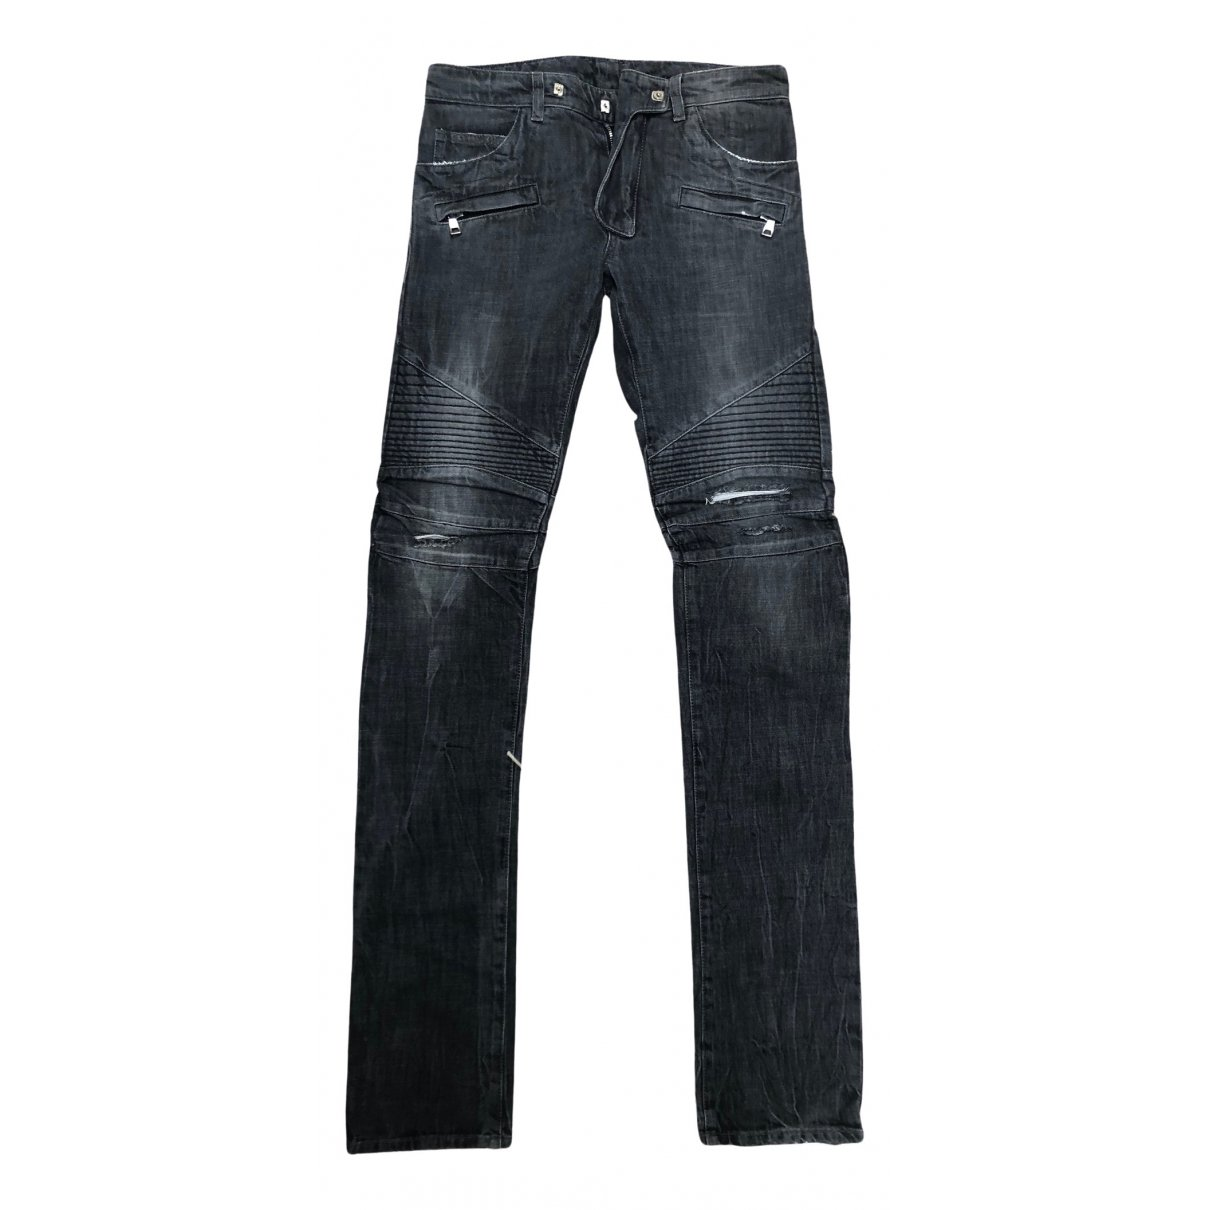 Balmain N Black Cotton Jeans for Men